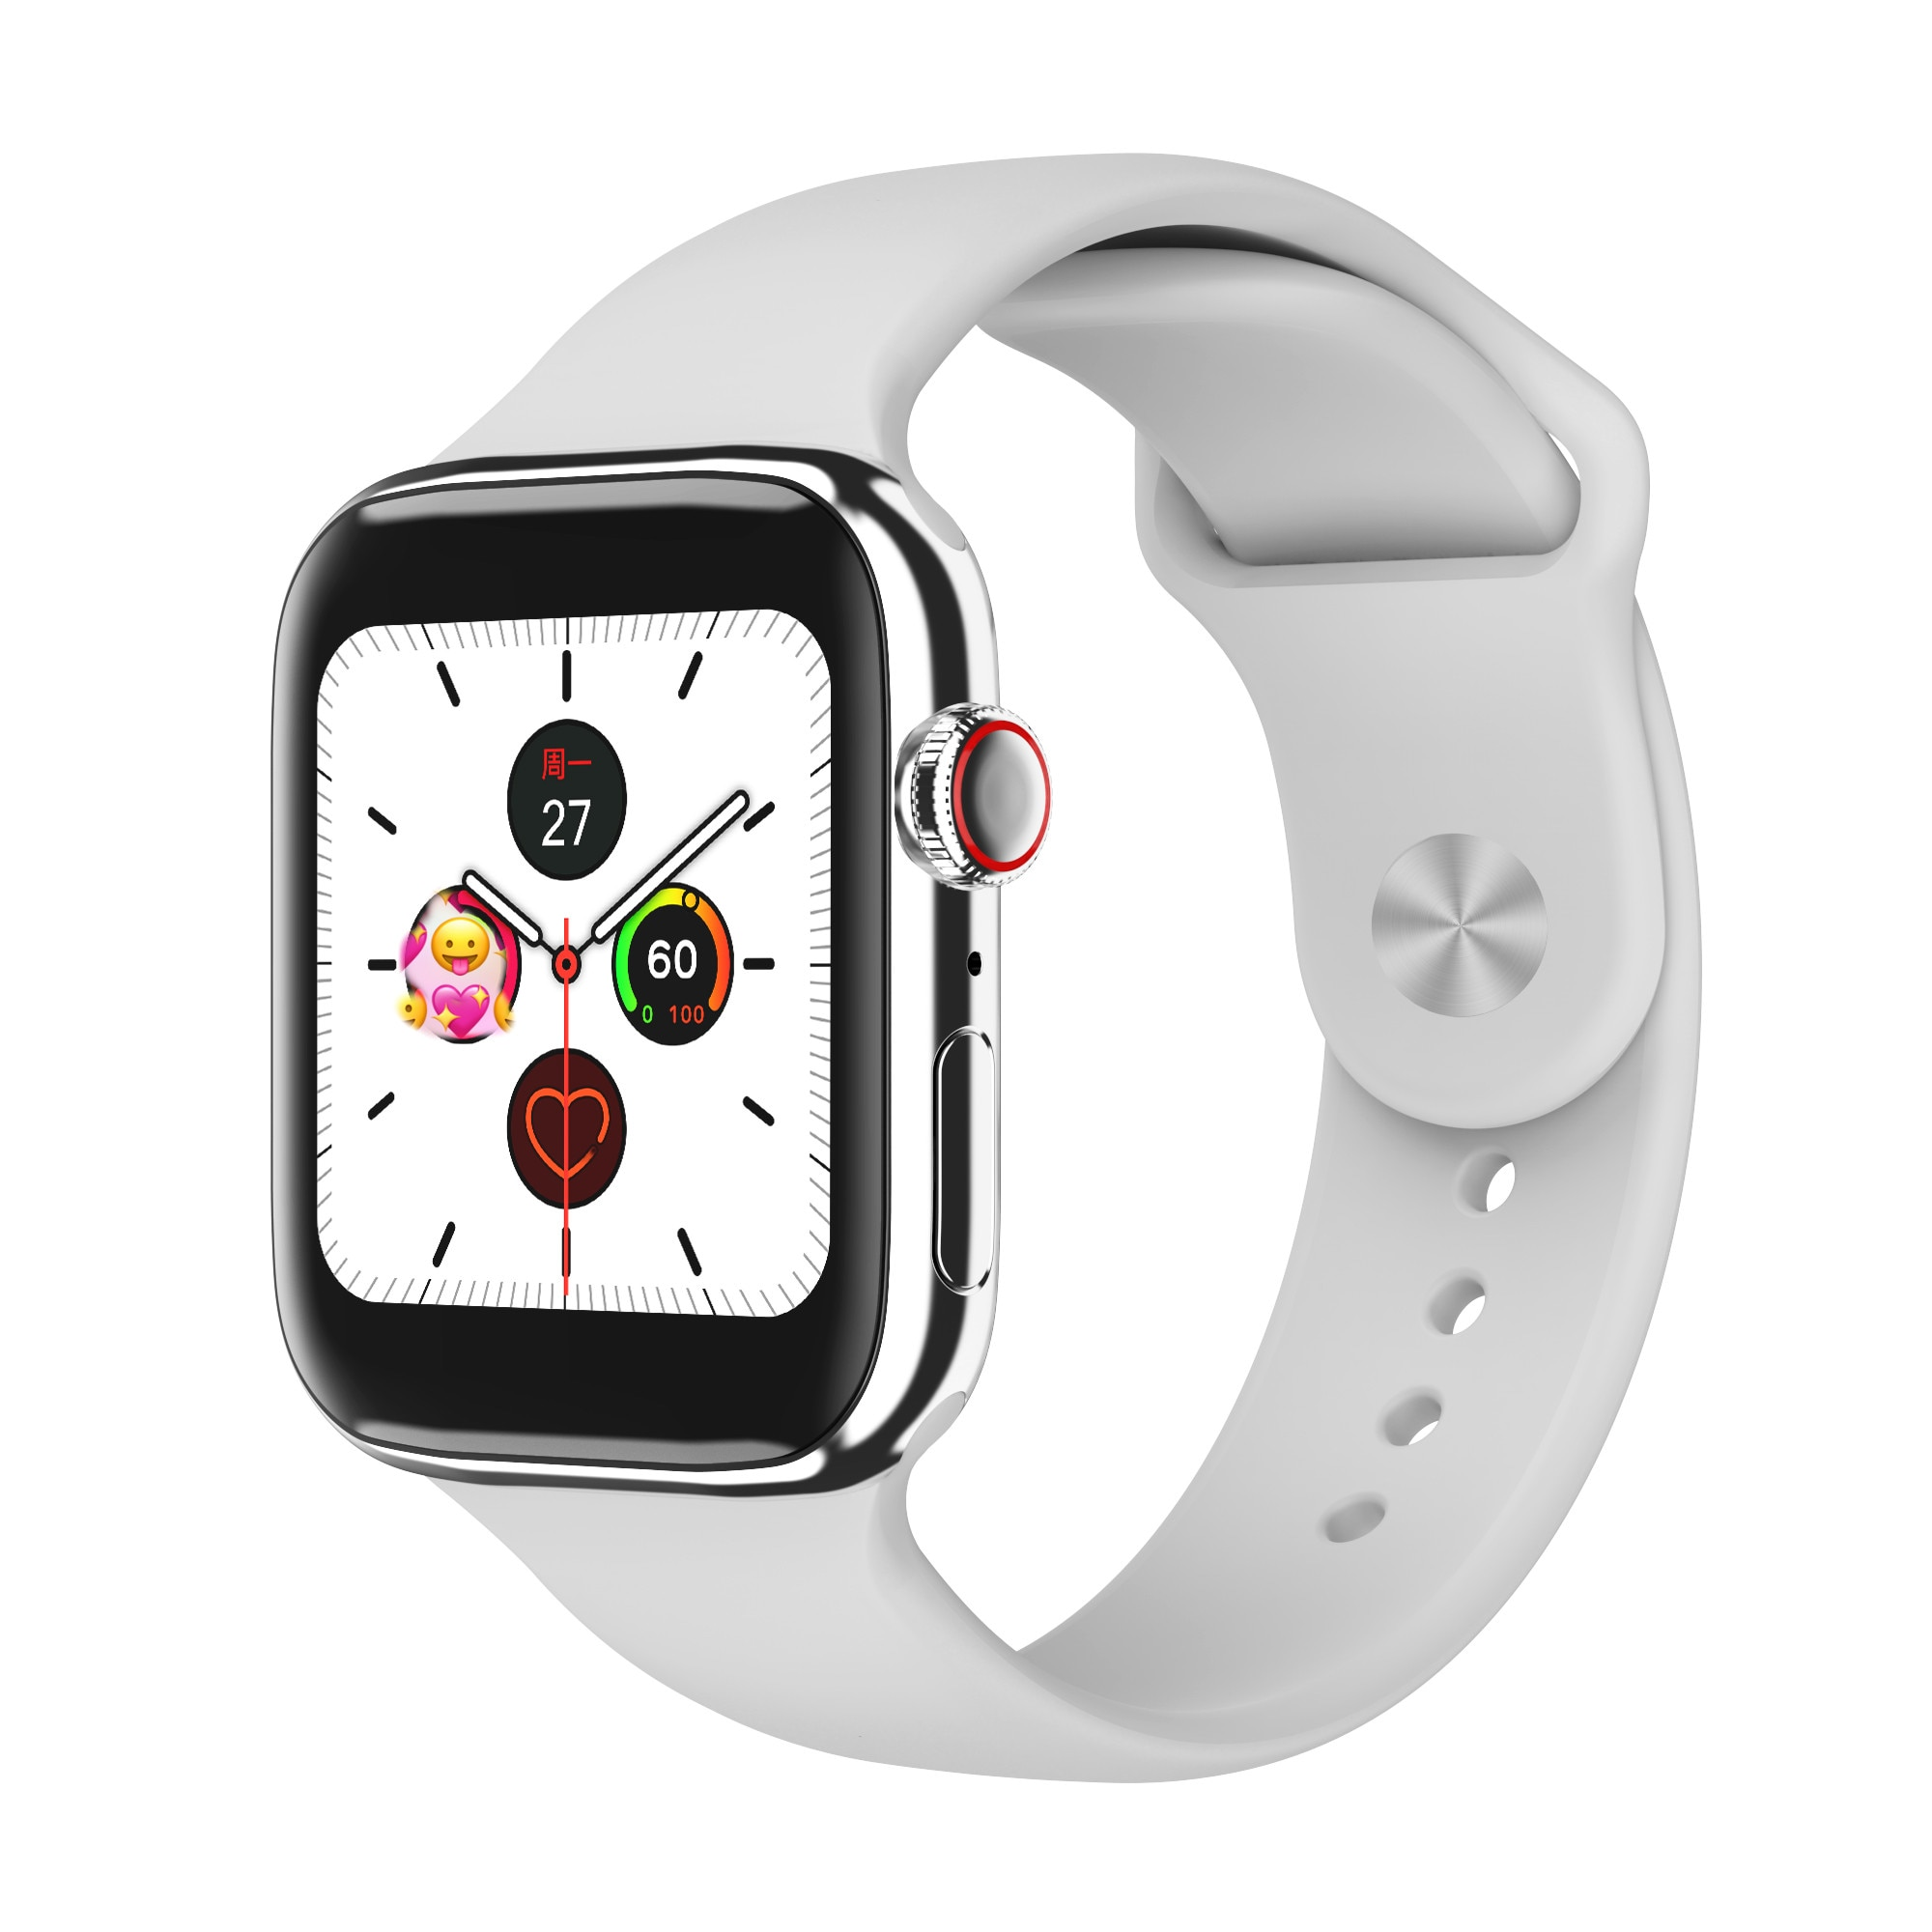 F18 men and women smart watches, fitness tracking bracelets, heart rate monitors, touch and keys, waterproof IP67 1